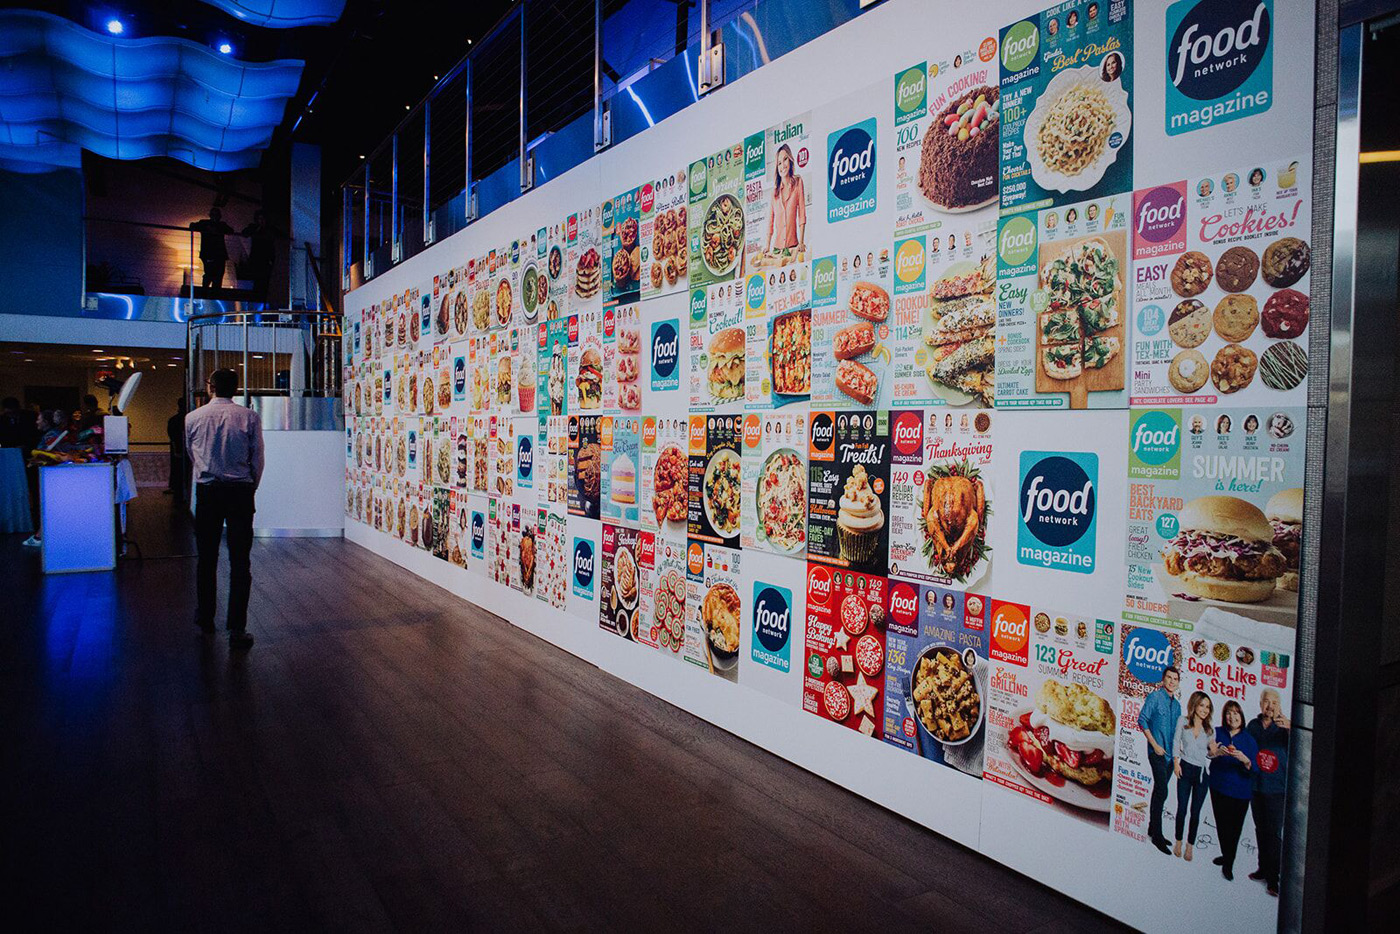 Wall branded with food images